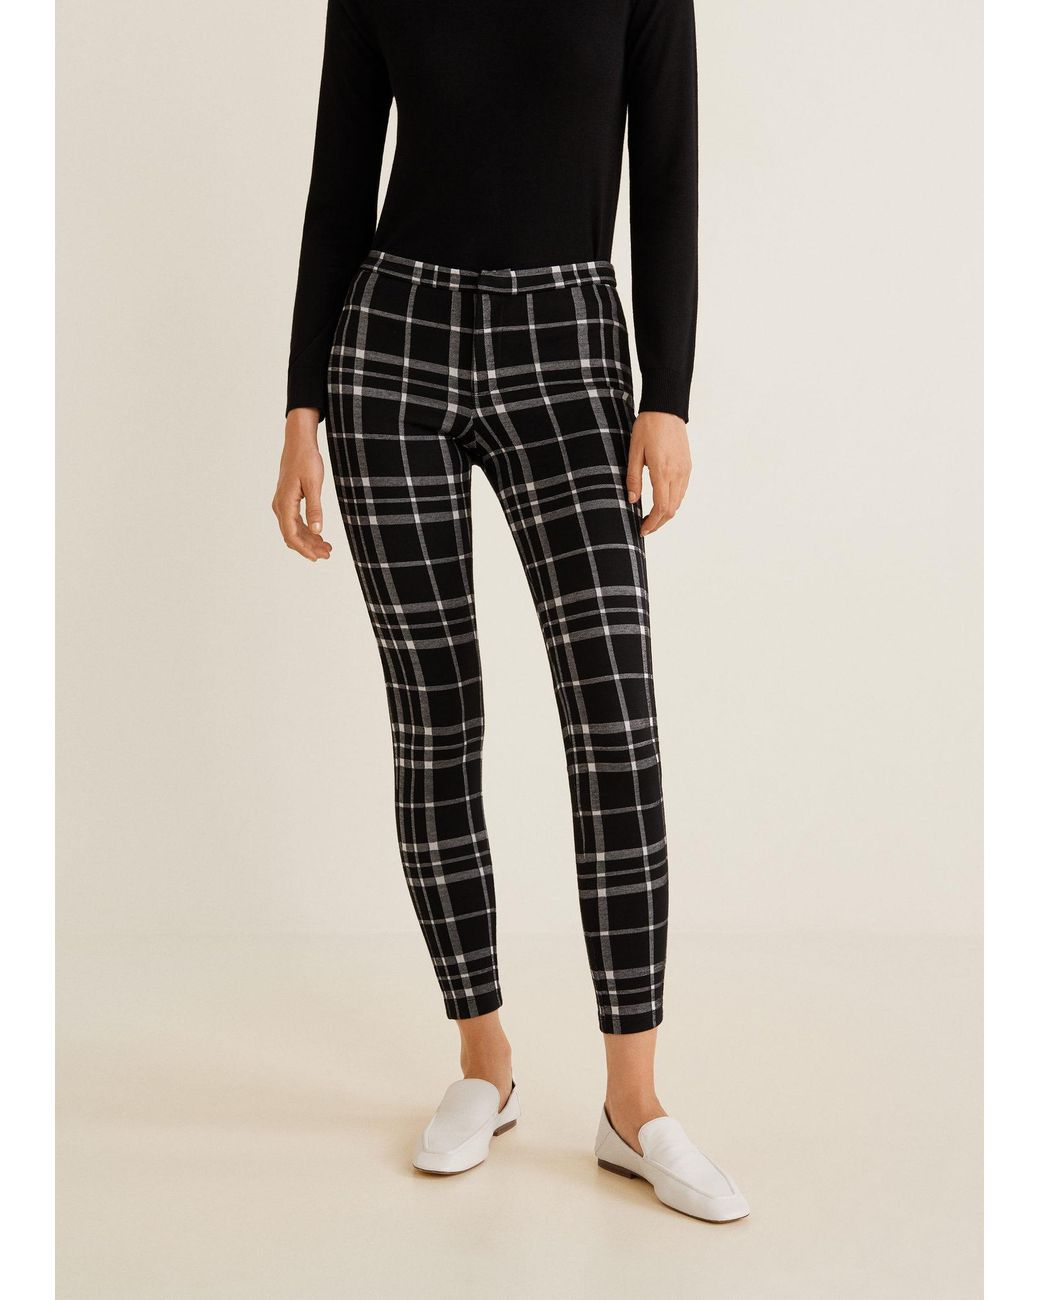 bba749eb4b413 Women's Black Checks Print leggings | Esthetic | Printed leggings ...